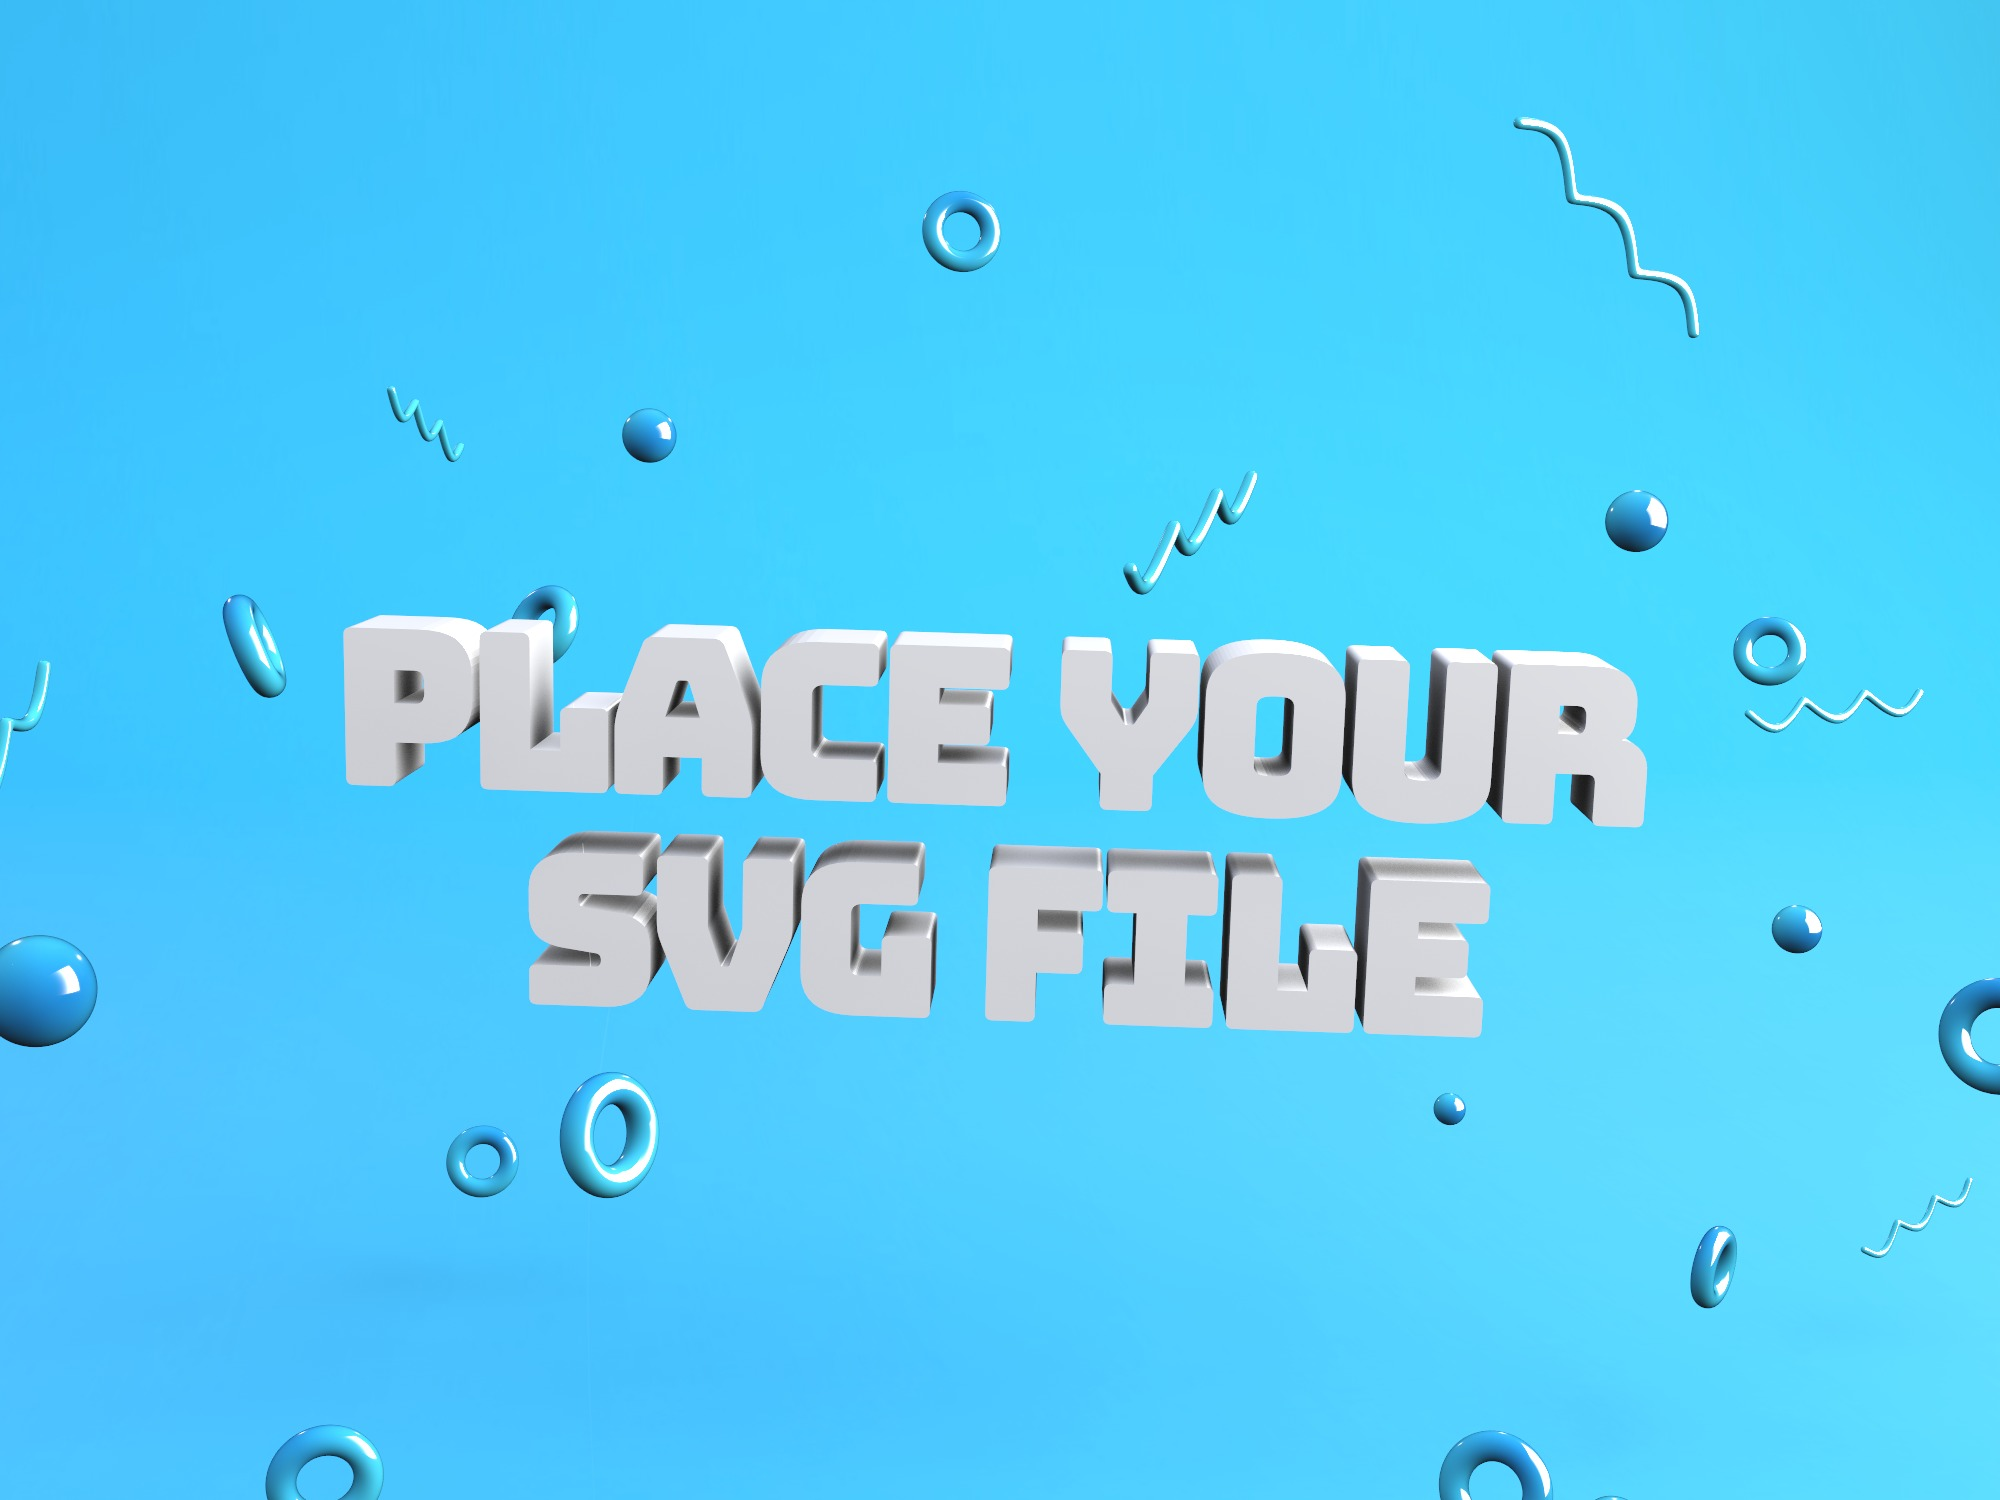 Create a 3D logo - place your SVG file - 3D design by Vectary templates on Jul 18, 2018